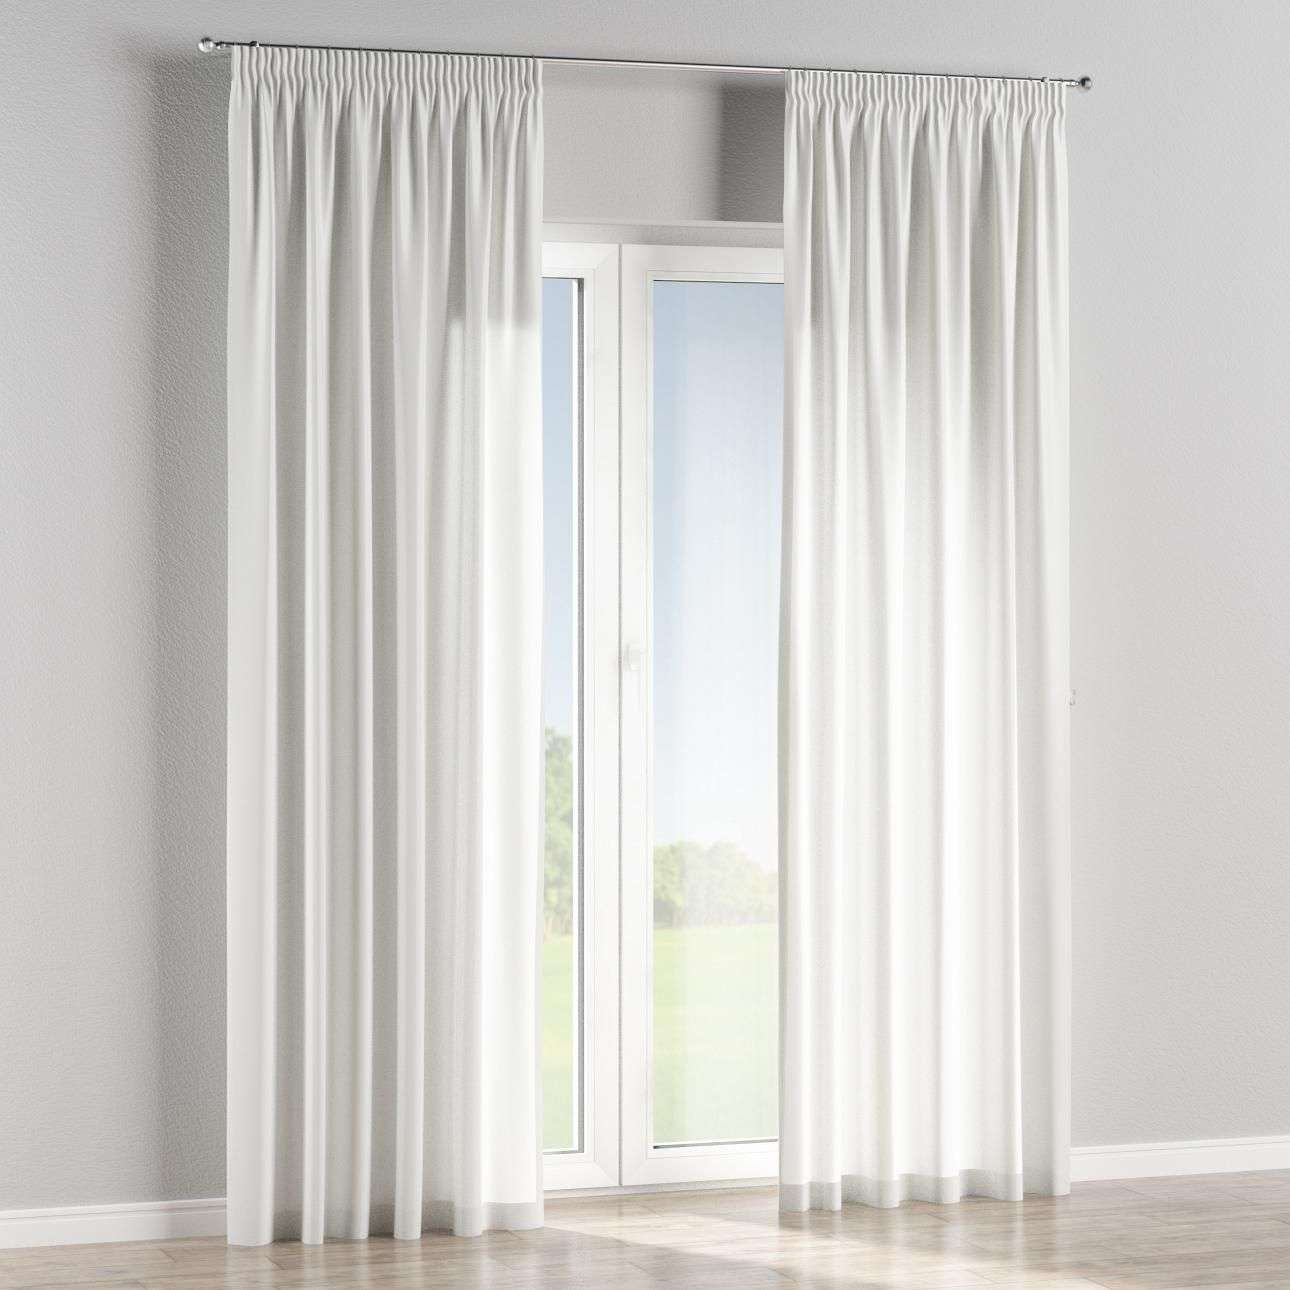 Pencil pleat curtains in collection Nature, fabric: 392-04